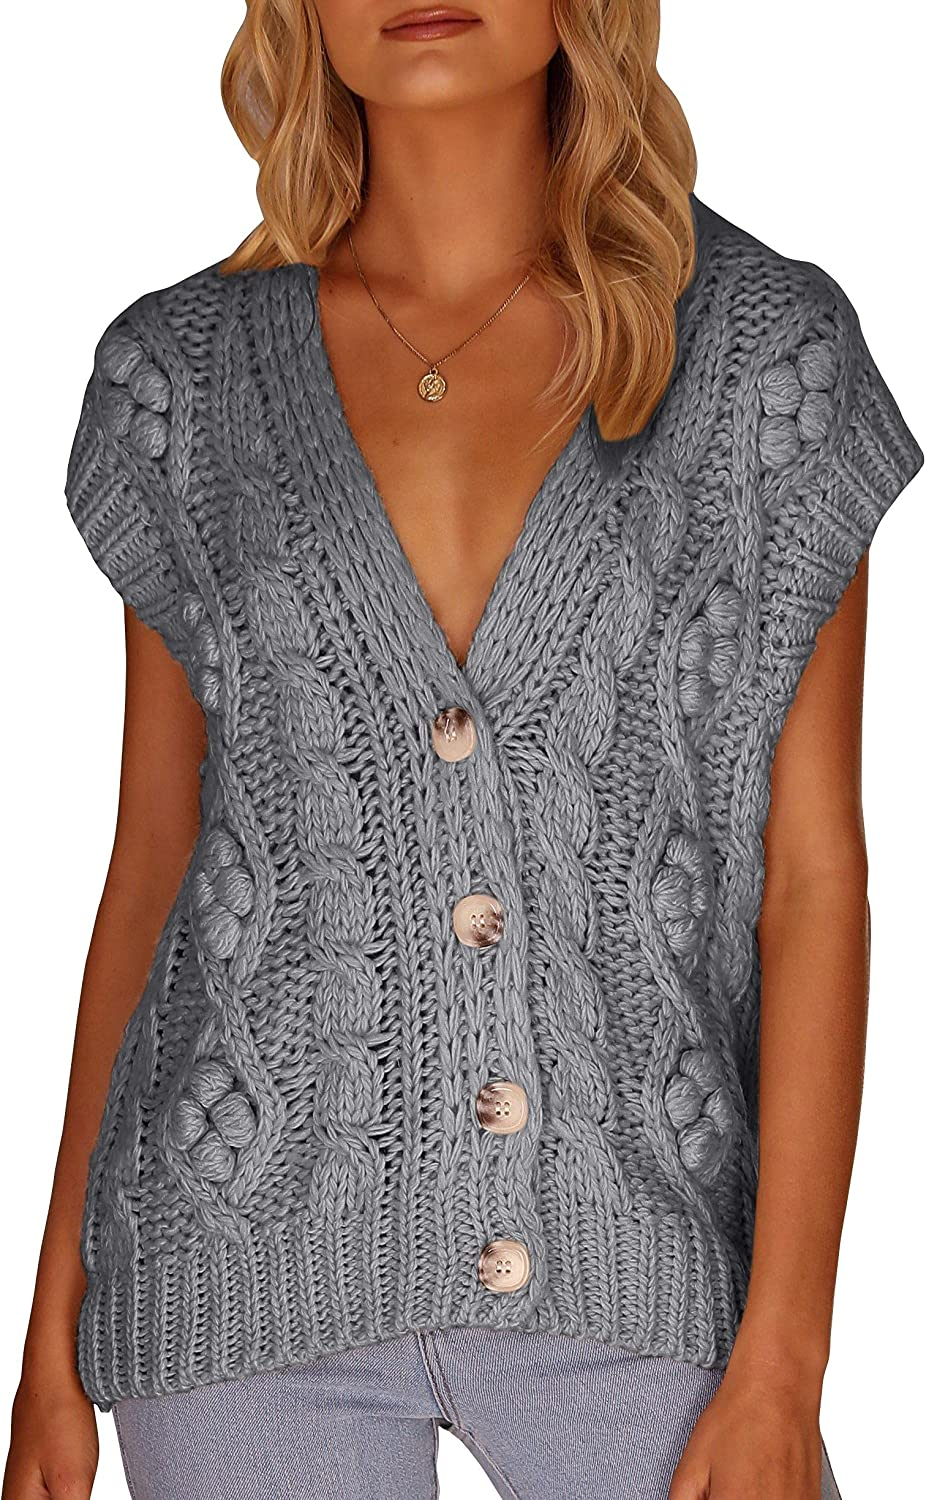 Womens Button Down Cable Knit Sweater Vests Loose Casual V Neck Knitted Sleeveless Cardigans Outerwear